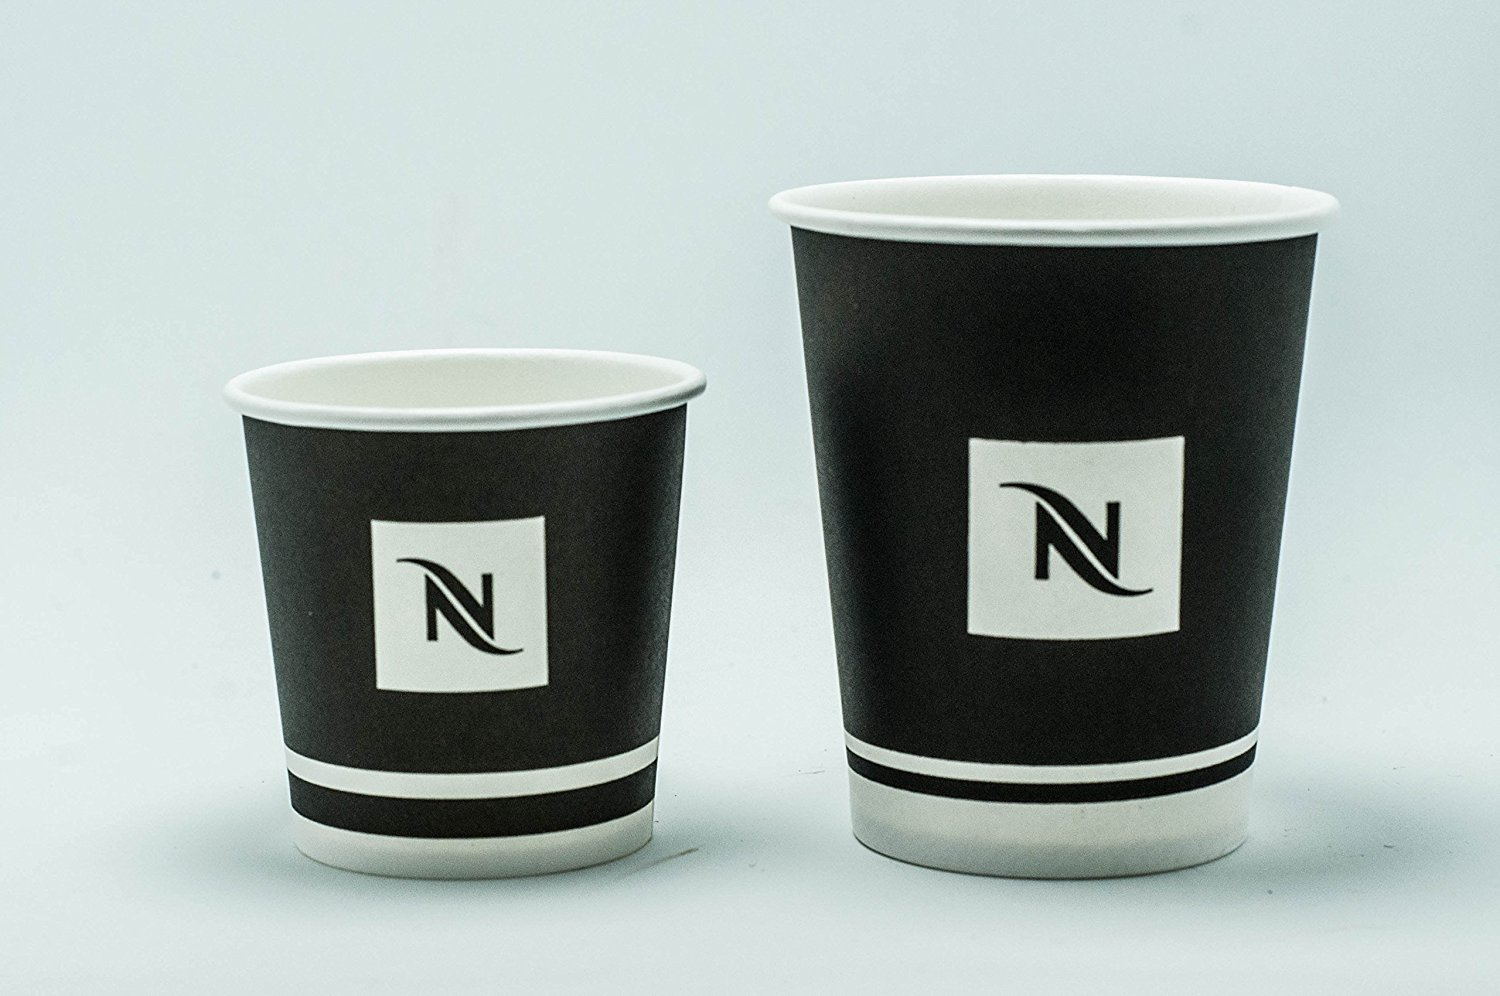 Nespresso Disposable Paper Cups Bundle (100-Count) . Includes 50 Cups 6oz 175ml & 50 Cups 4oz 100ml.Perfect For Espresso,Cappuccino Or Your Other Favorite Hot Beverages IL-201 IL-202